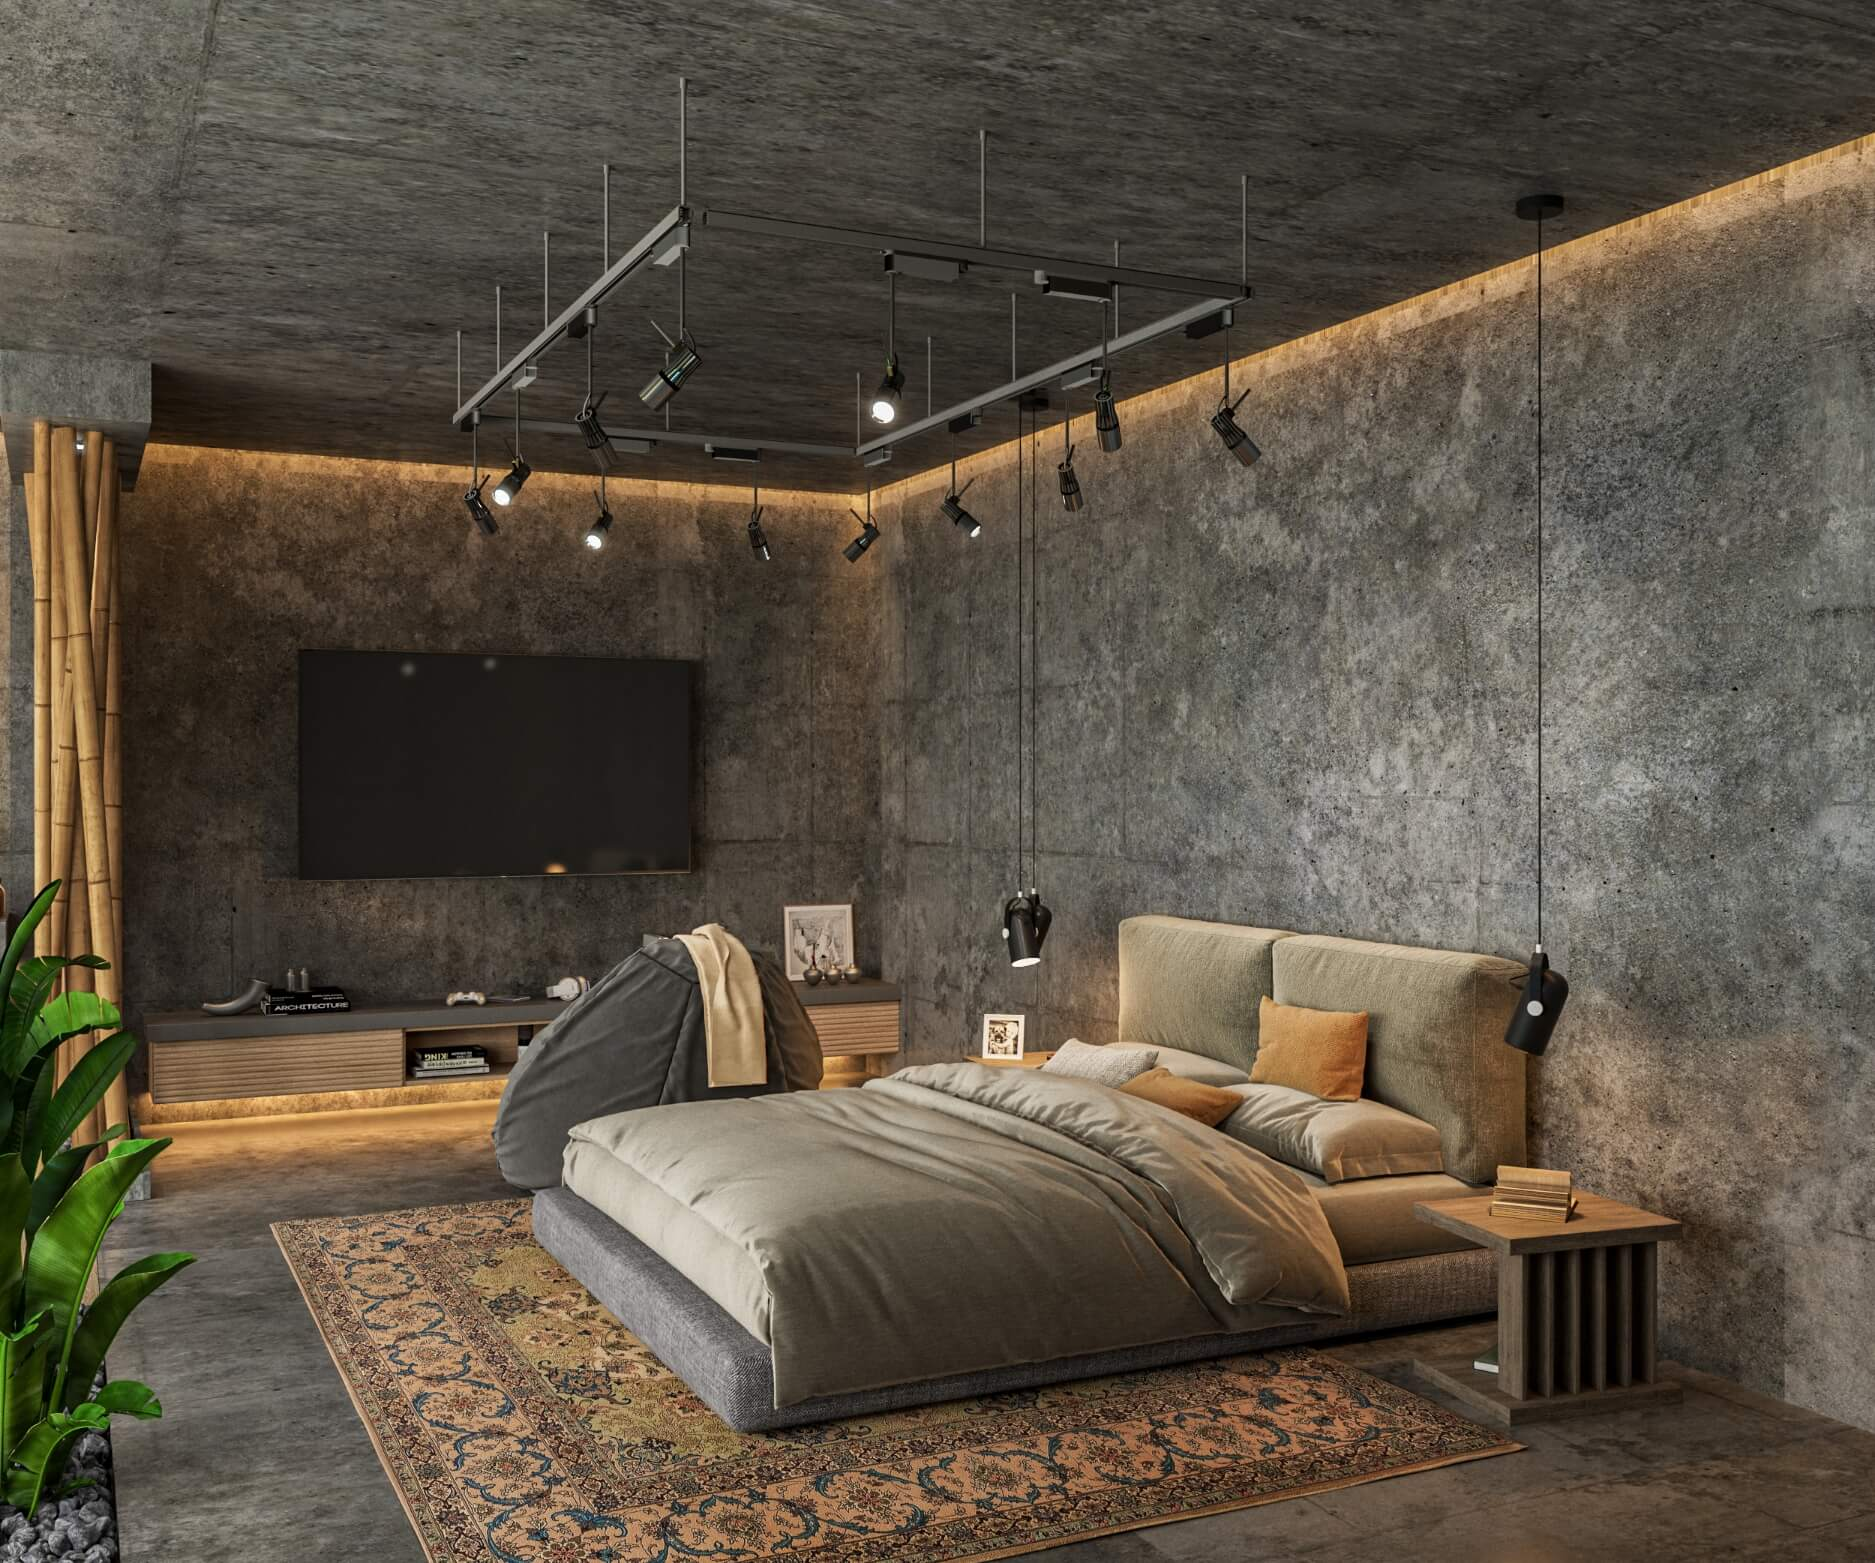 Modern Bedroom Design For A Musician By Visualization